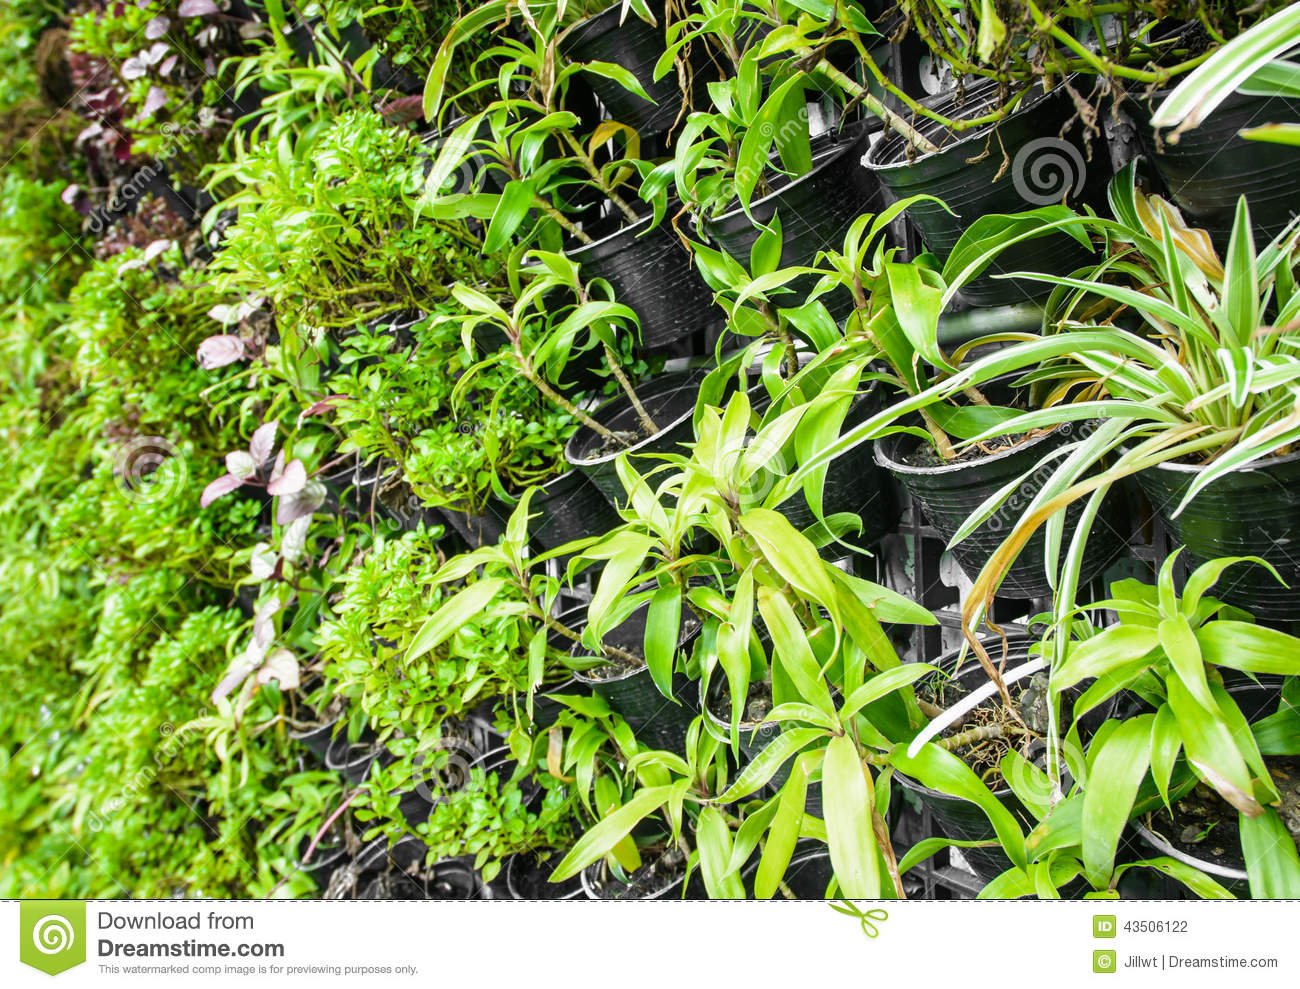 Plante verte de ferme verticale photo stock image du for Plante verte